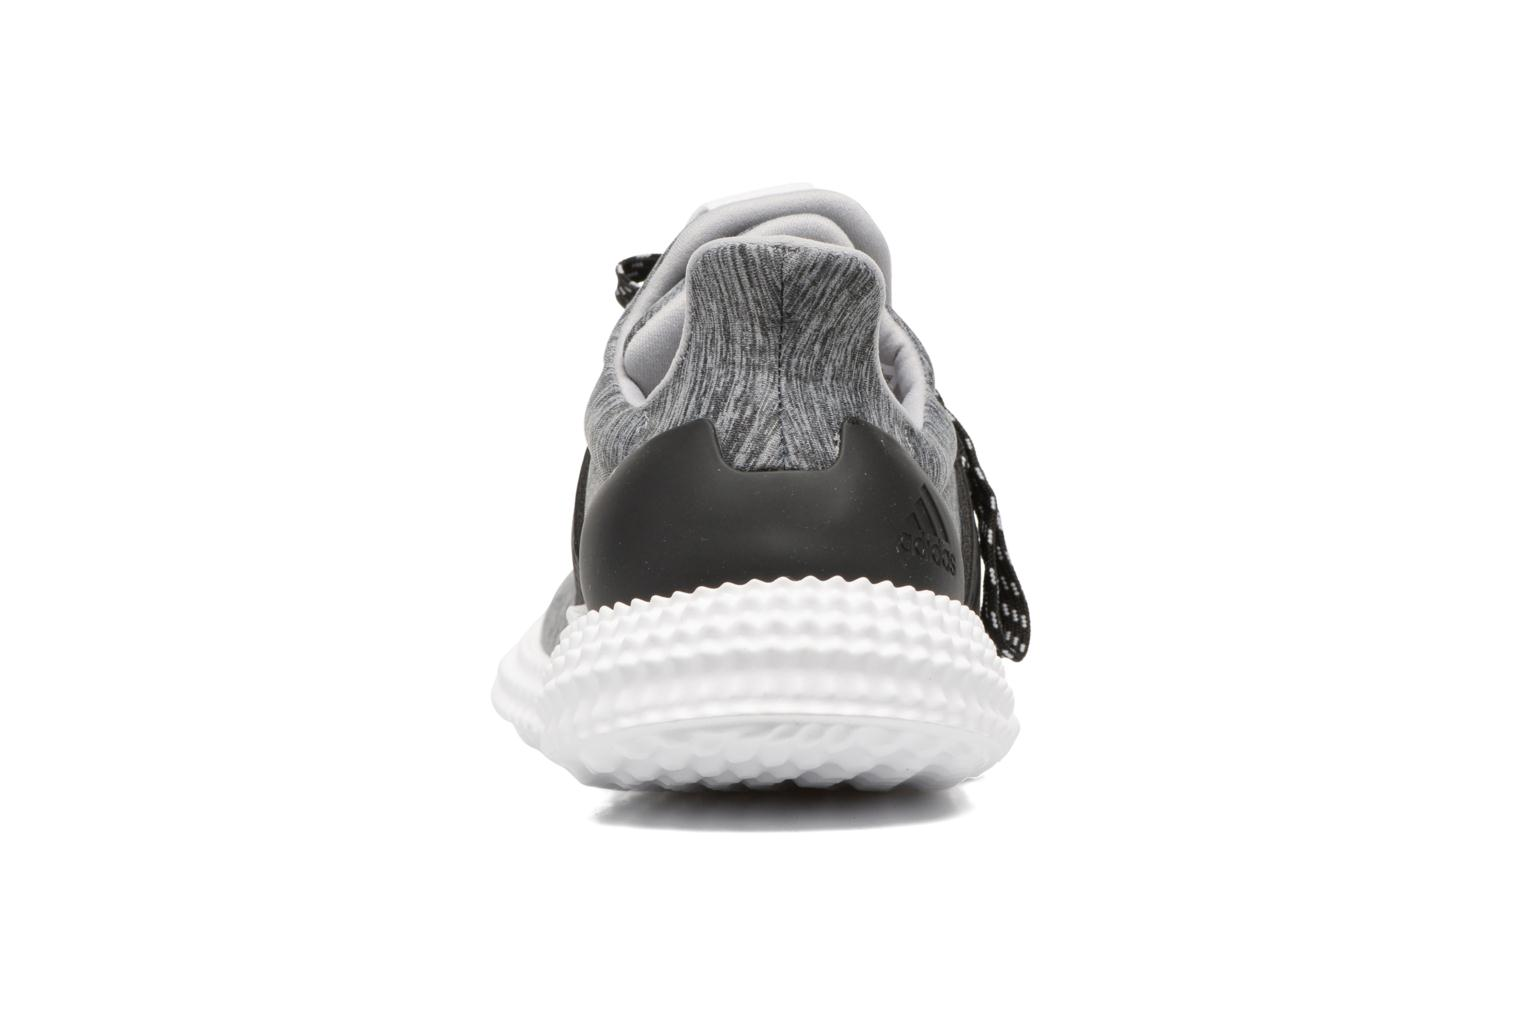 Adidas Athletics 24/7 W Brgrmo/Blacry/Noiess